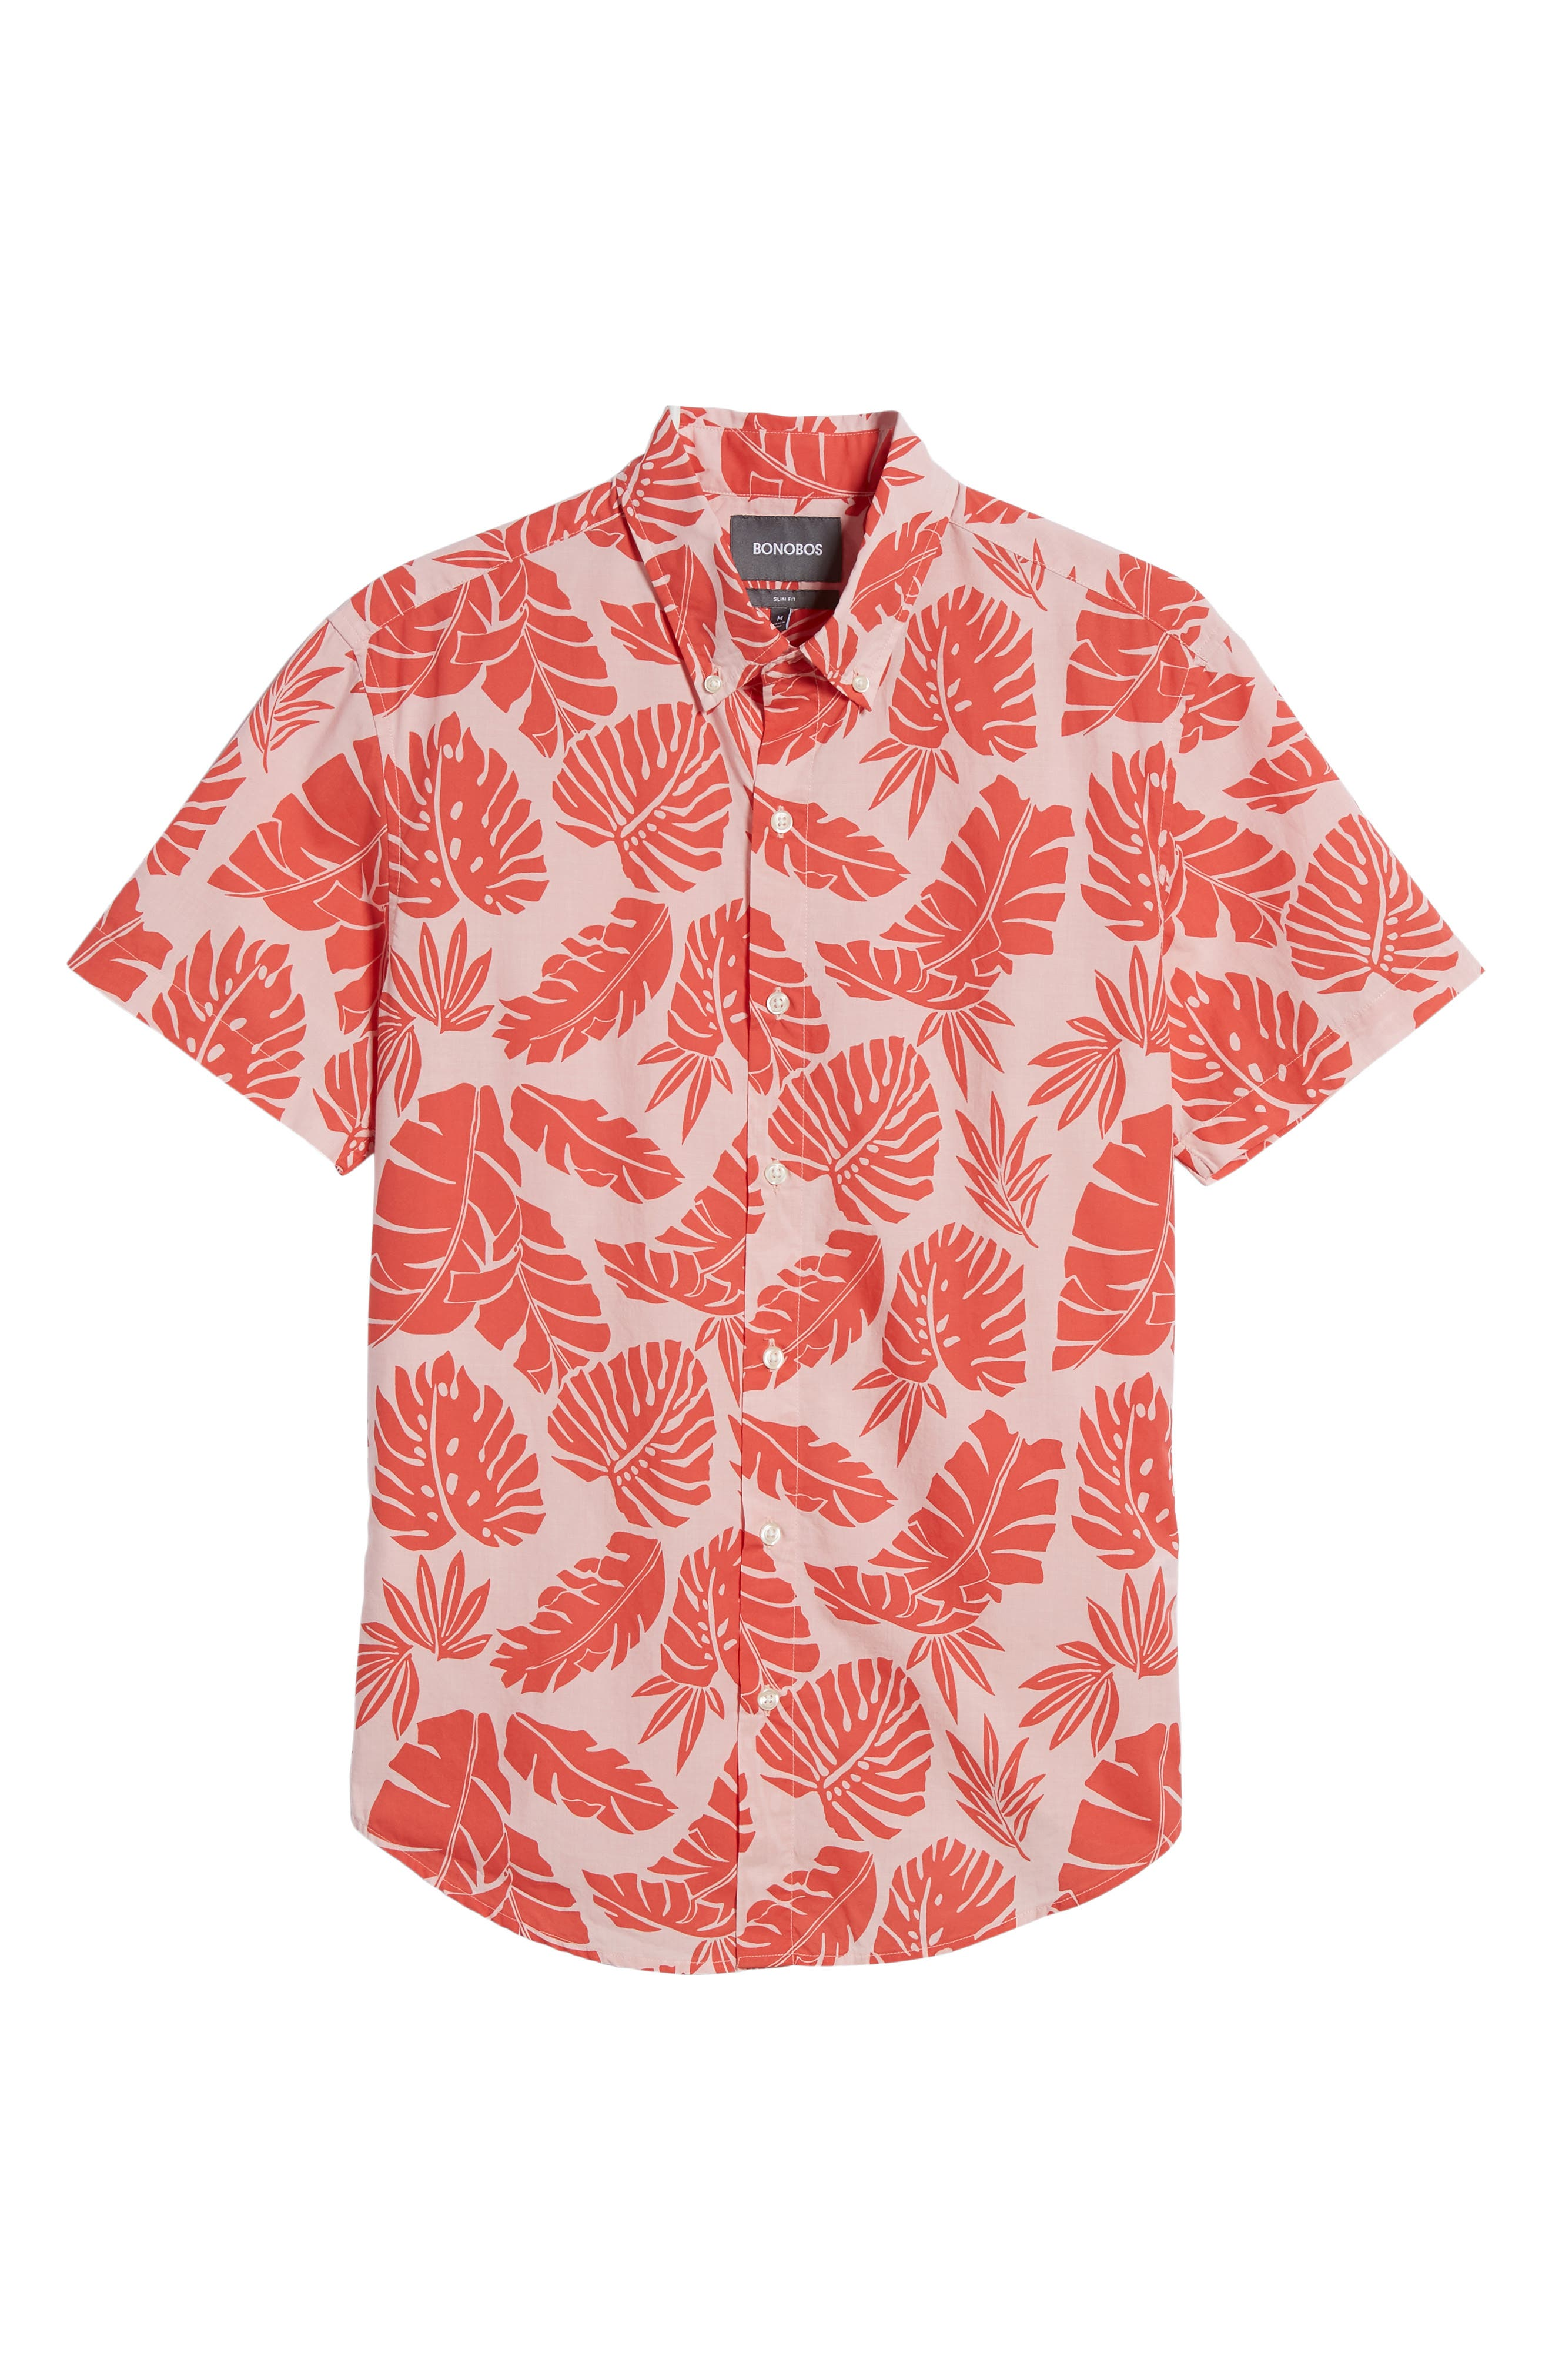 Riviera Slim Fit Palm Print Sport Shirt,                             Alternate thumbnail 6, color,                             Palm Scatter - Coral Fan